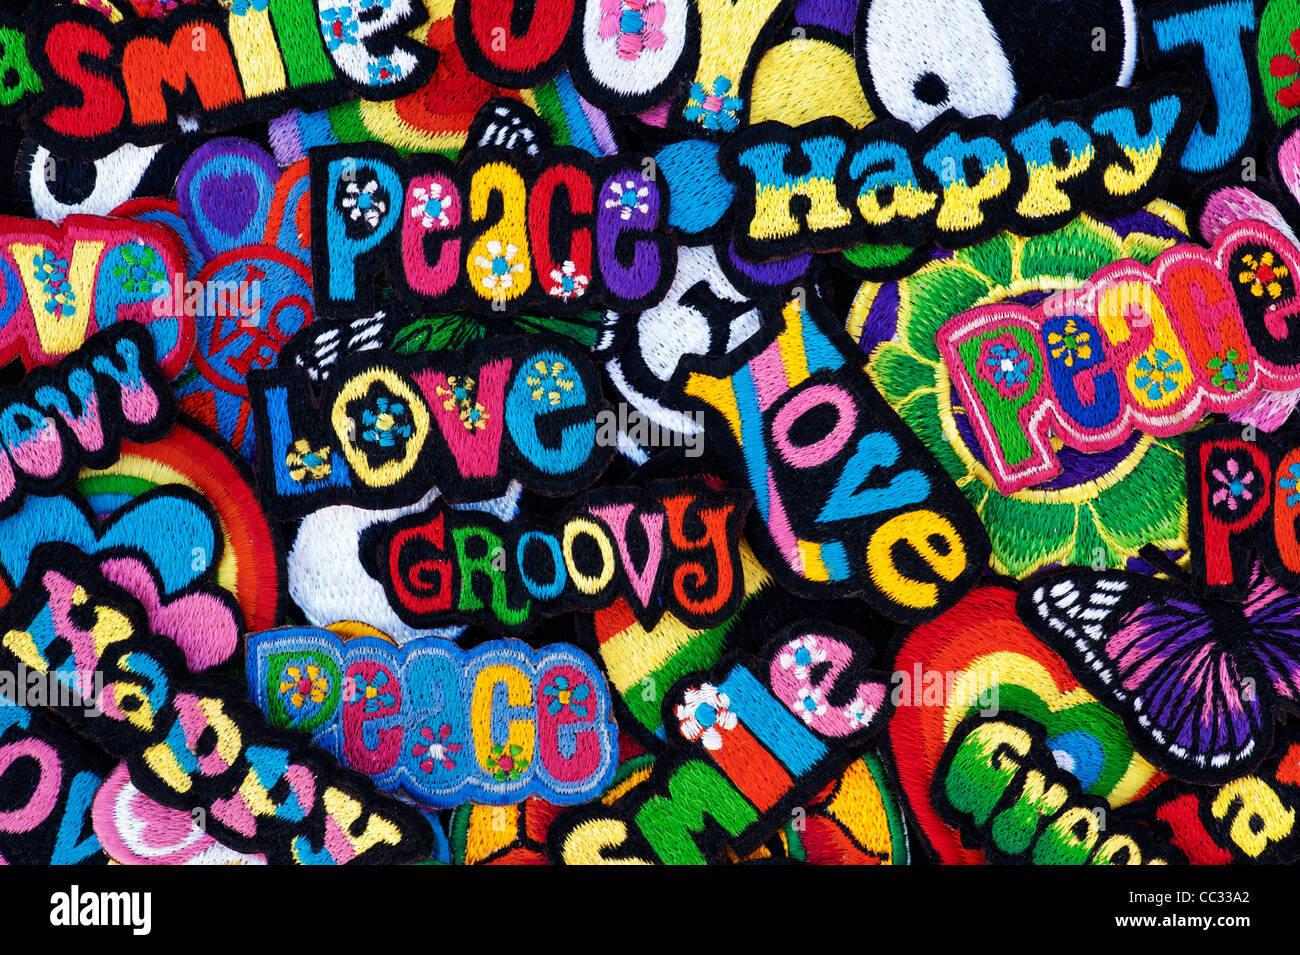 Embroidery iron on patches of Multicoloured Love, Peace, Happy, Smile, Joy and Groovy words on a black background - Stock Image